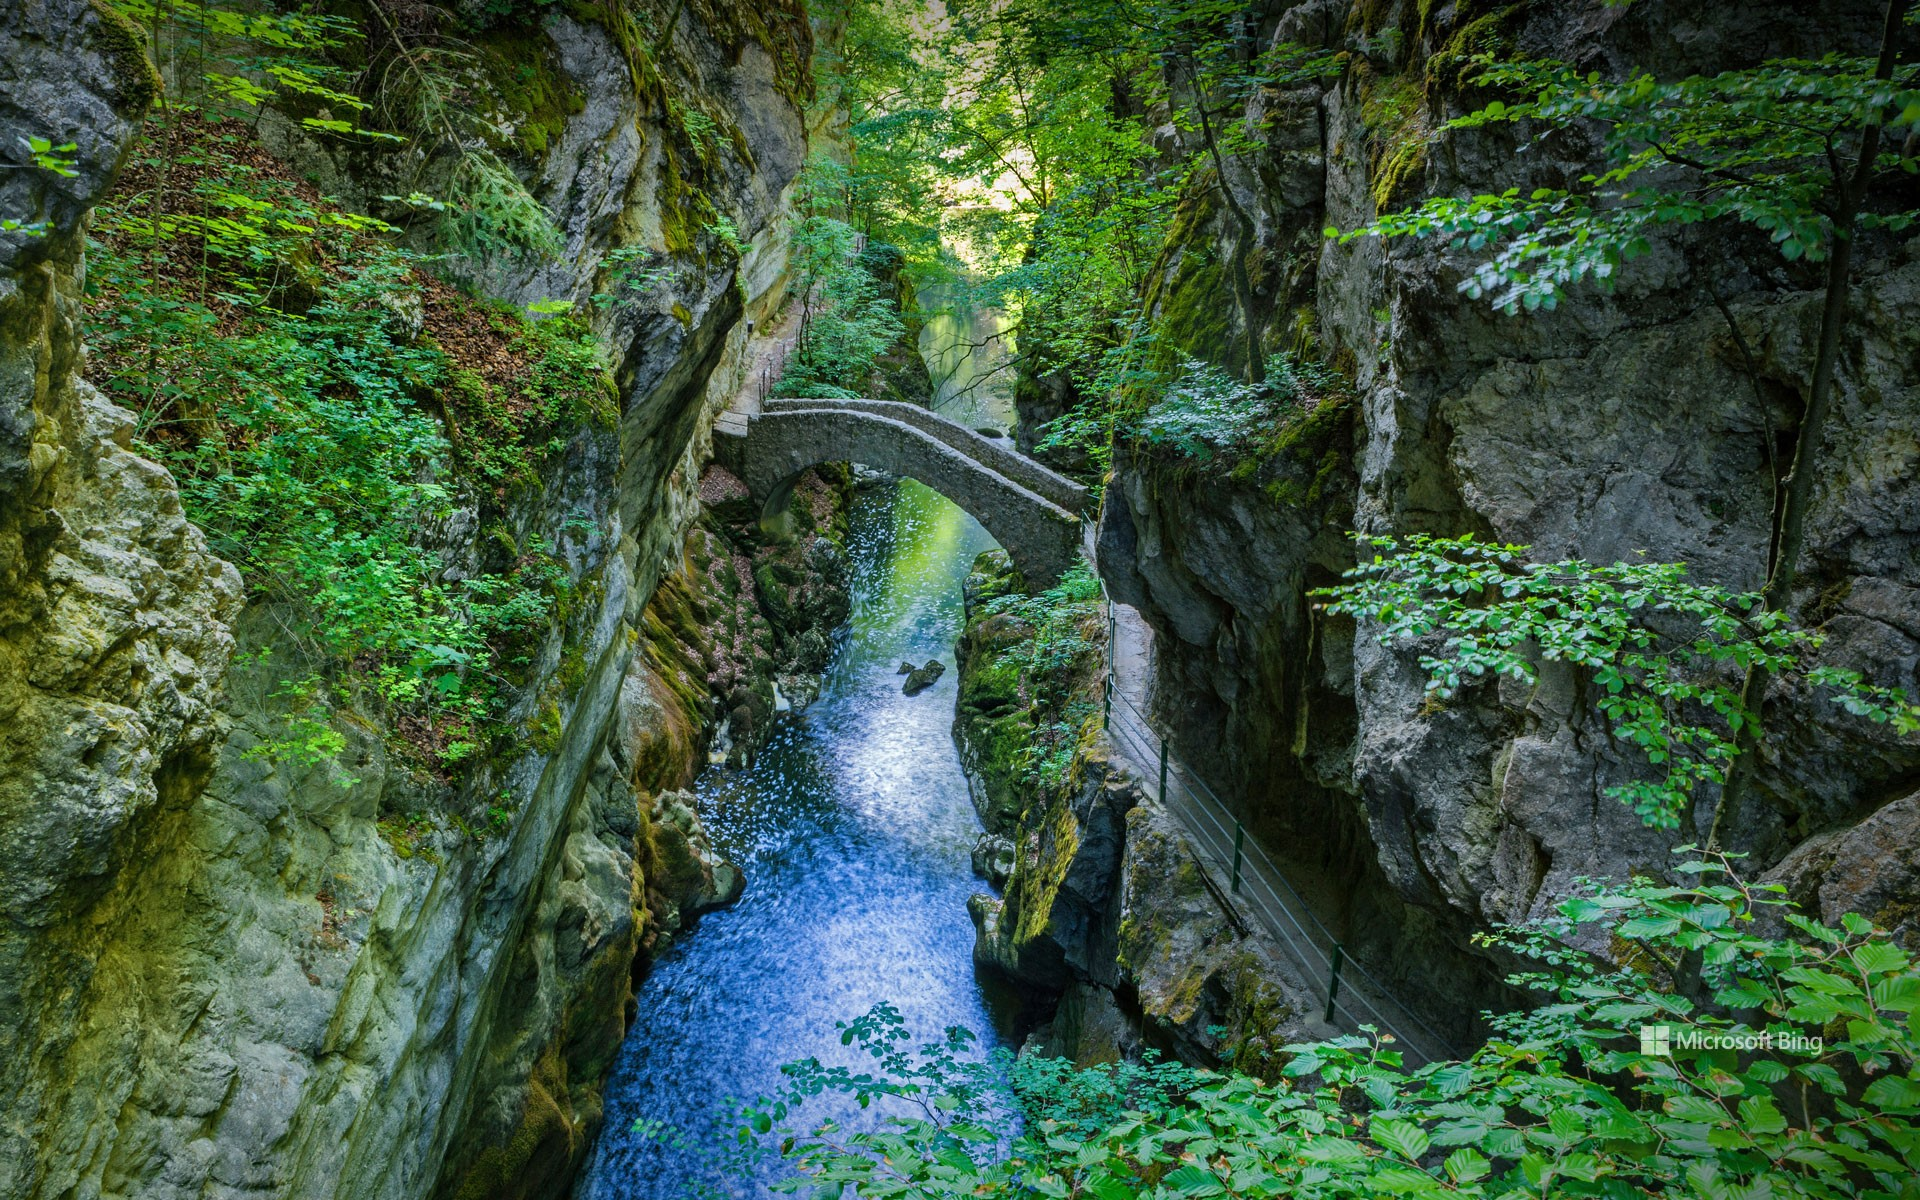 Saut de Brot stone bridge, Areuse Gorge, Switzerland